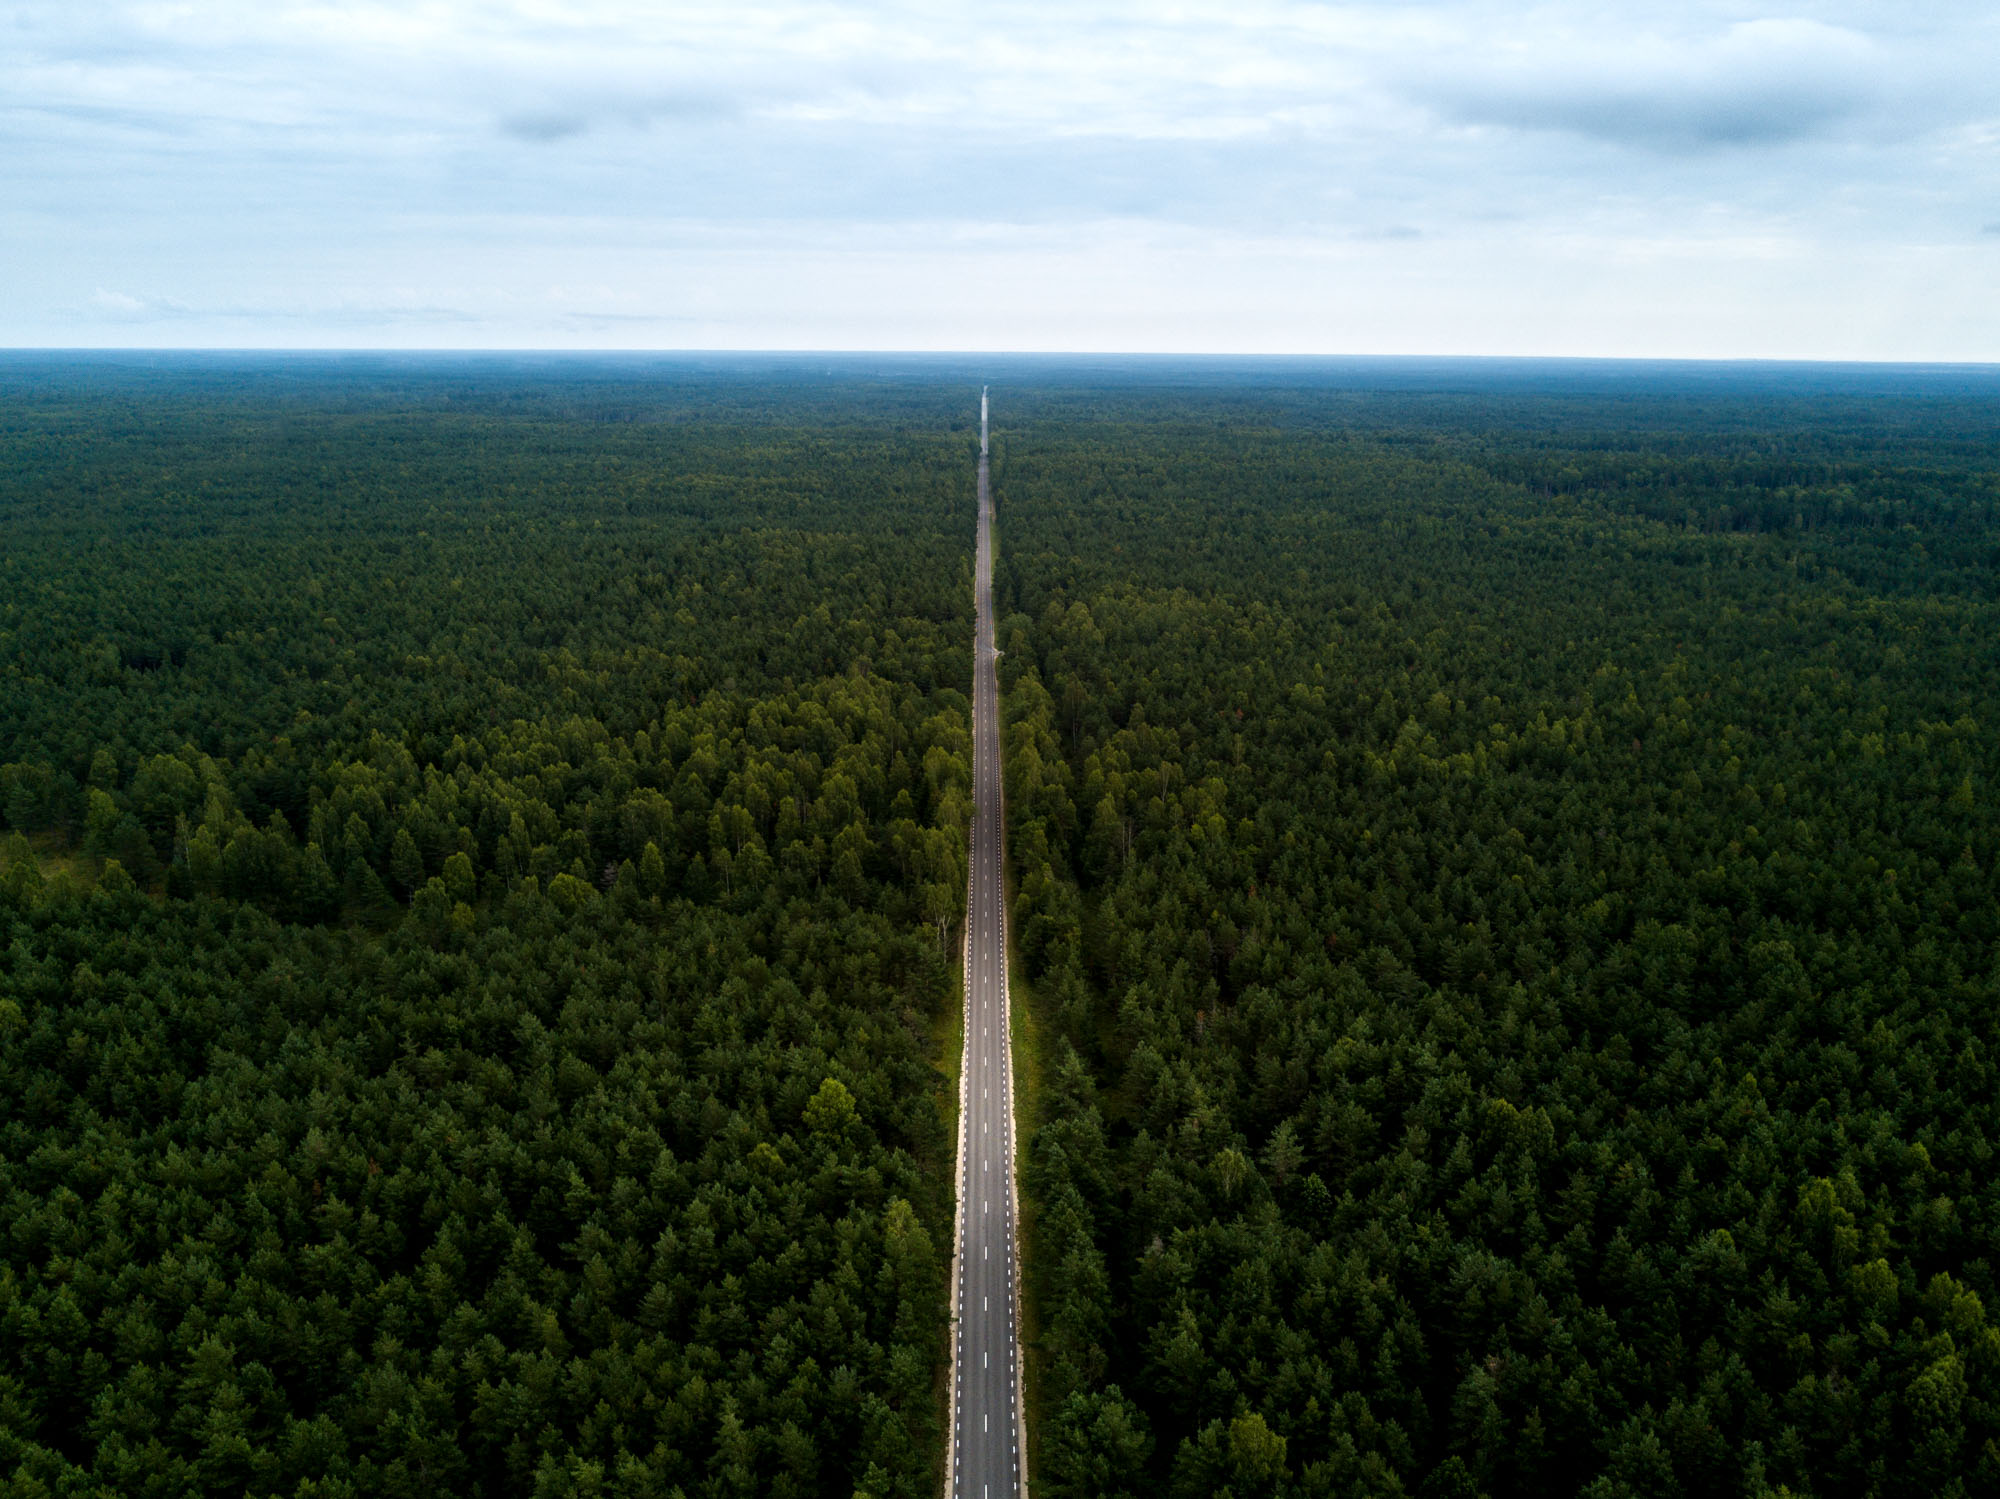 Photo by Pascal Sommer - A road on Saaremaa